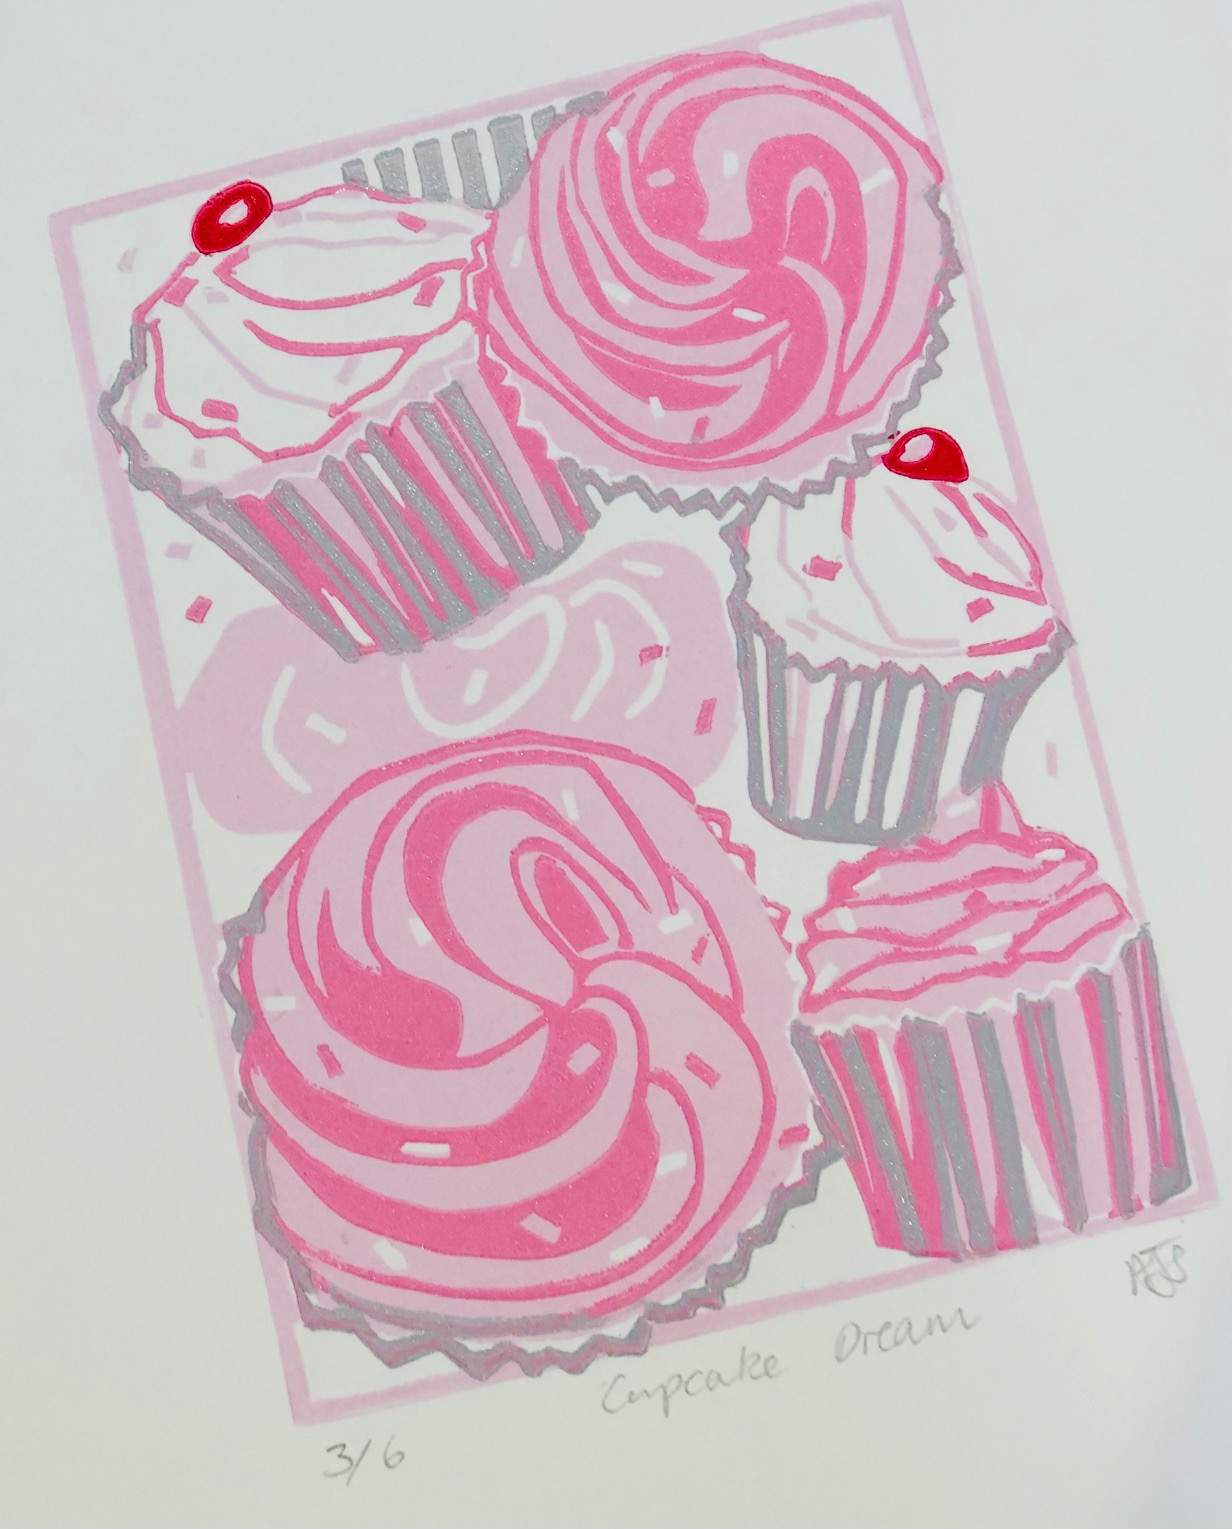 'Cupcake Dream' Limited Edition Reduction Lino Print by Mandy Smith